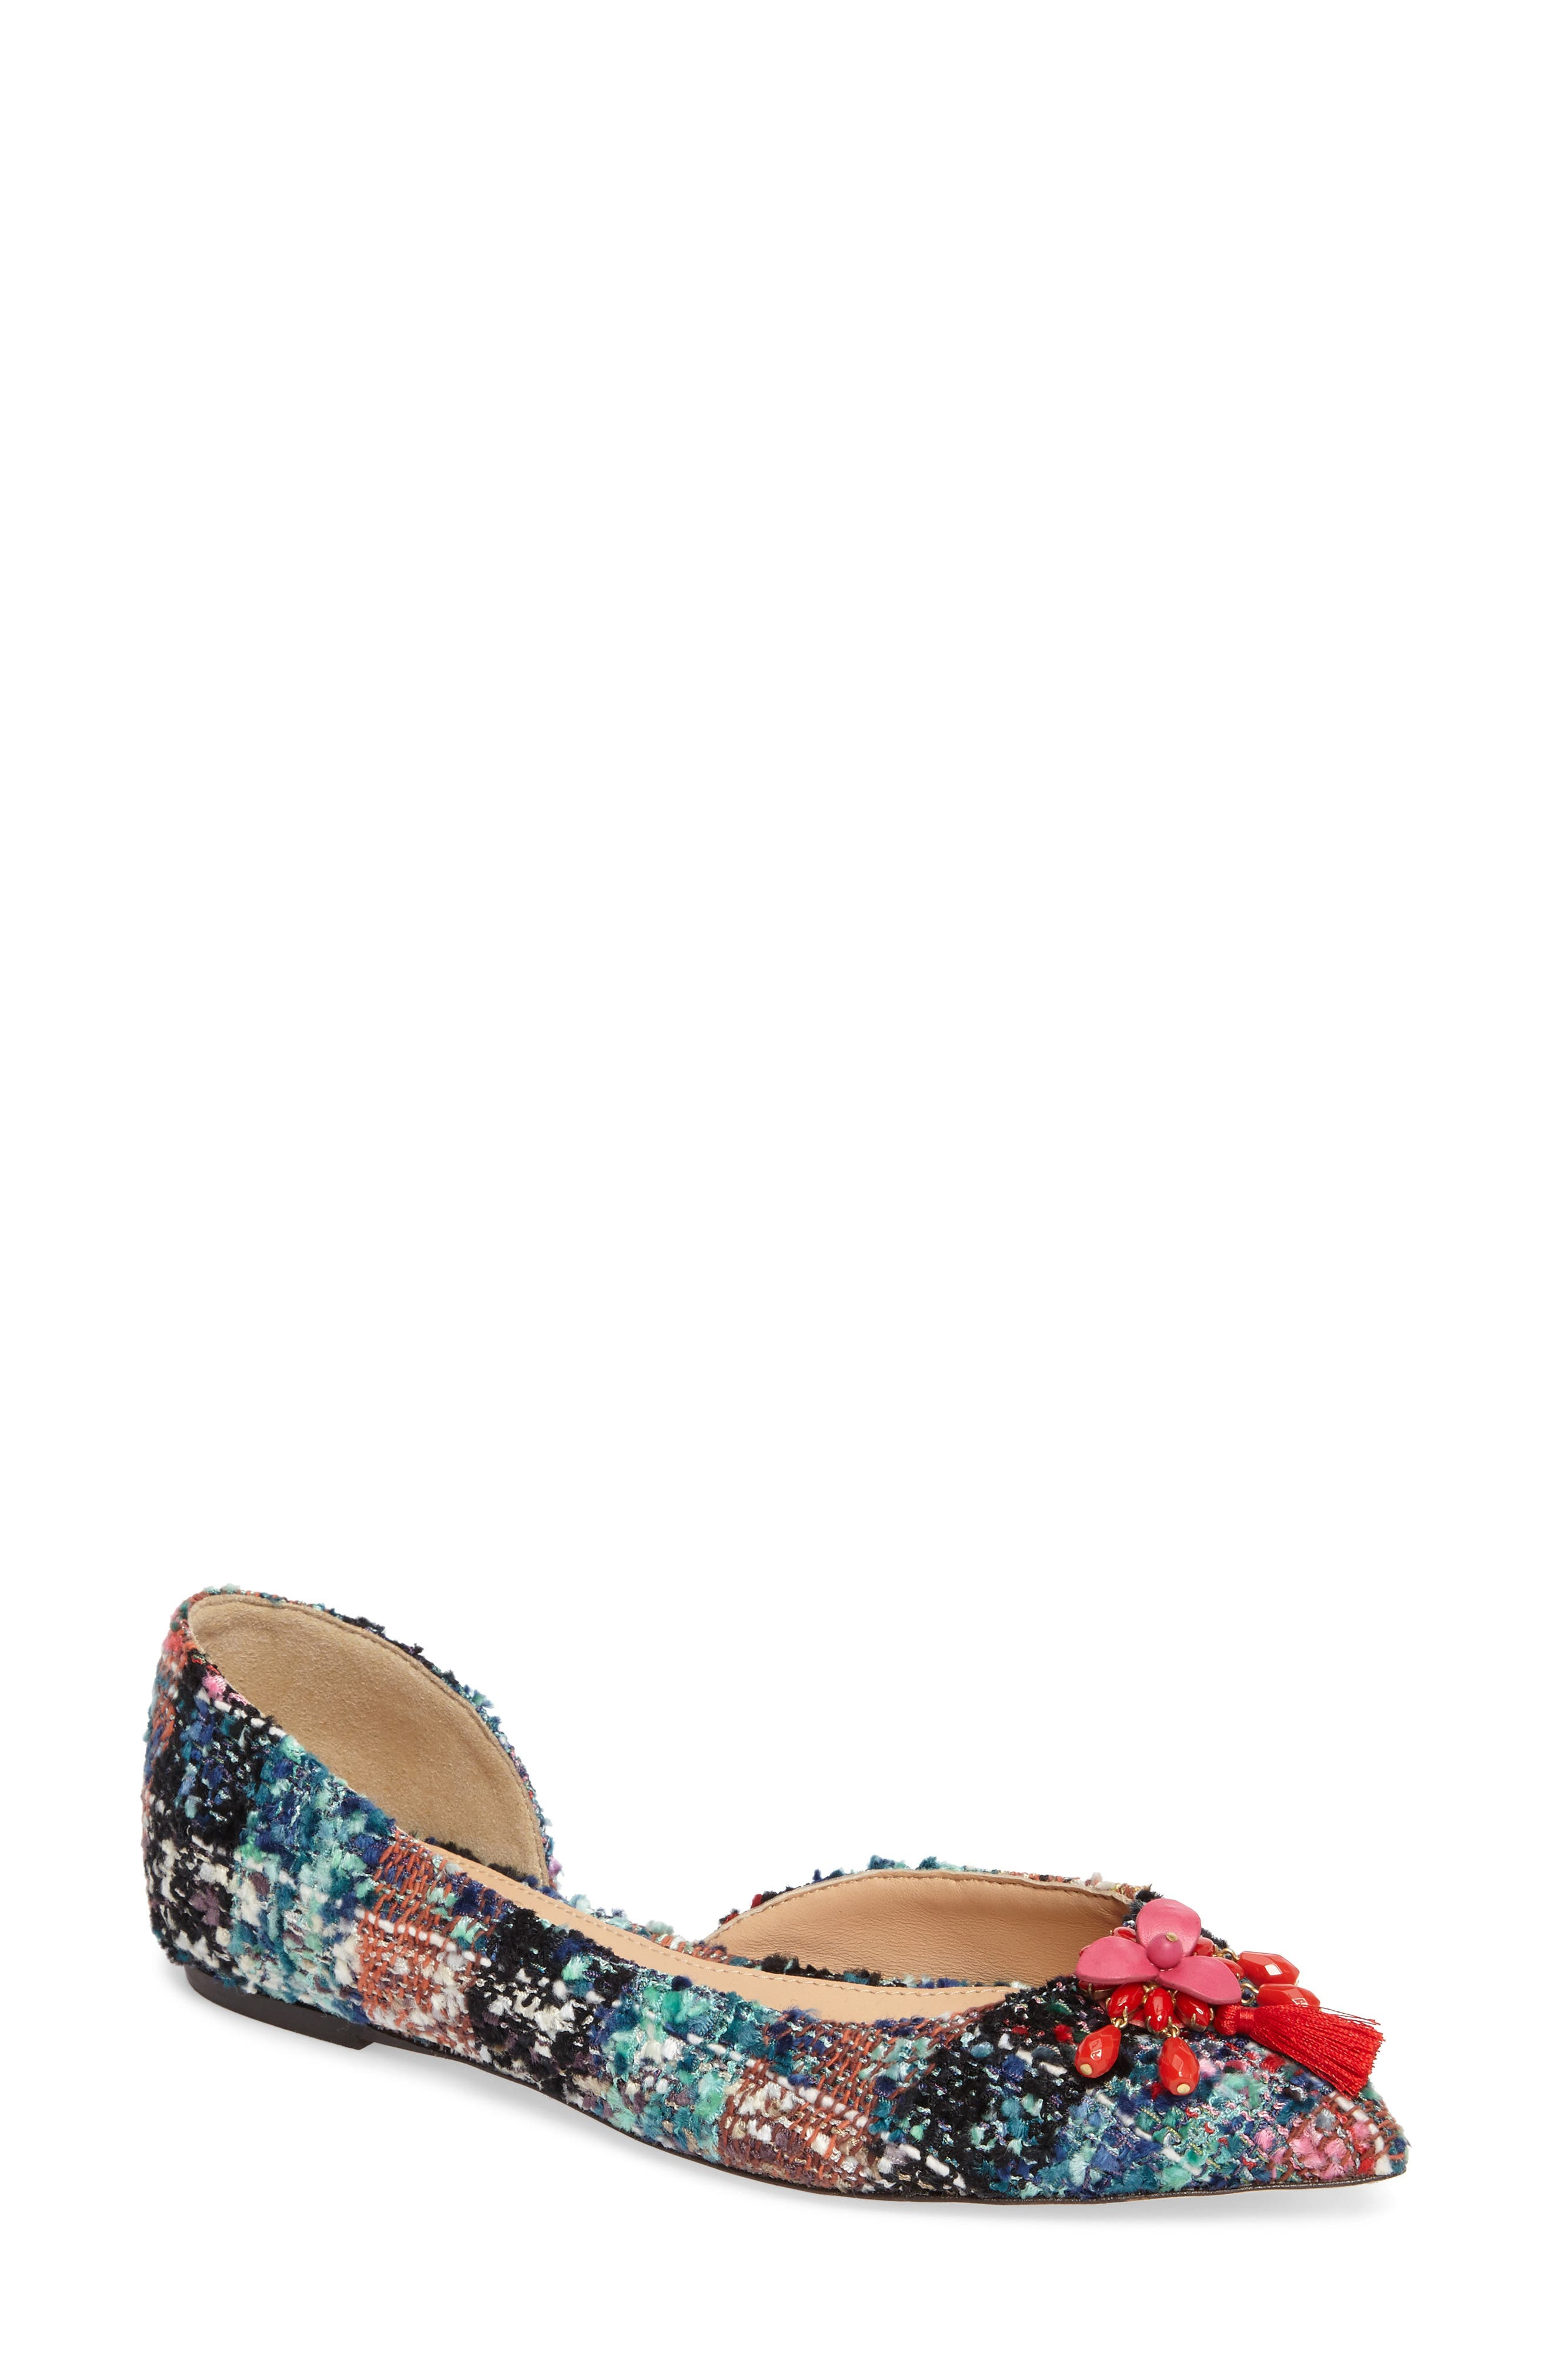 J.Crew Sadie Pointy Toe Flat (Women)